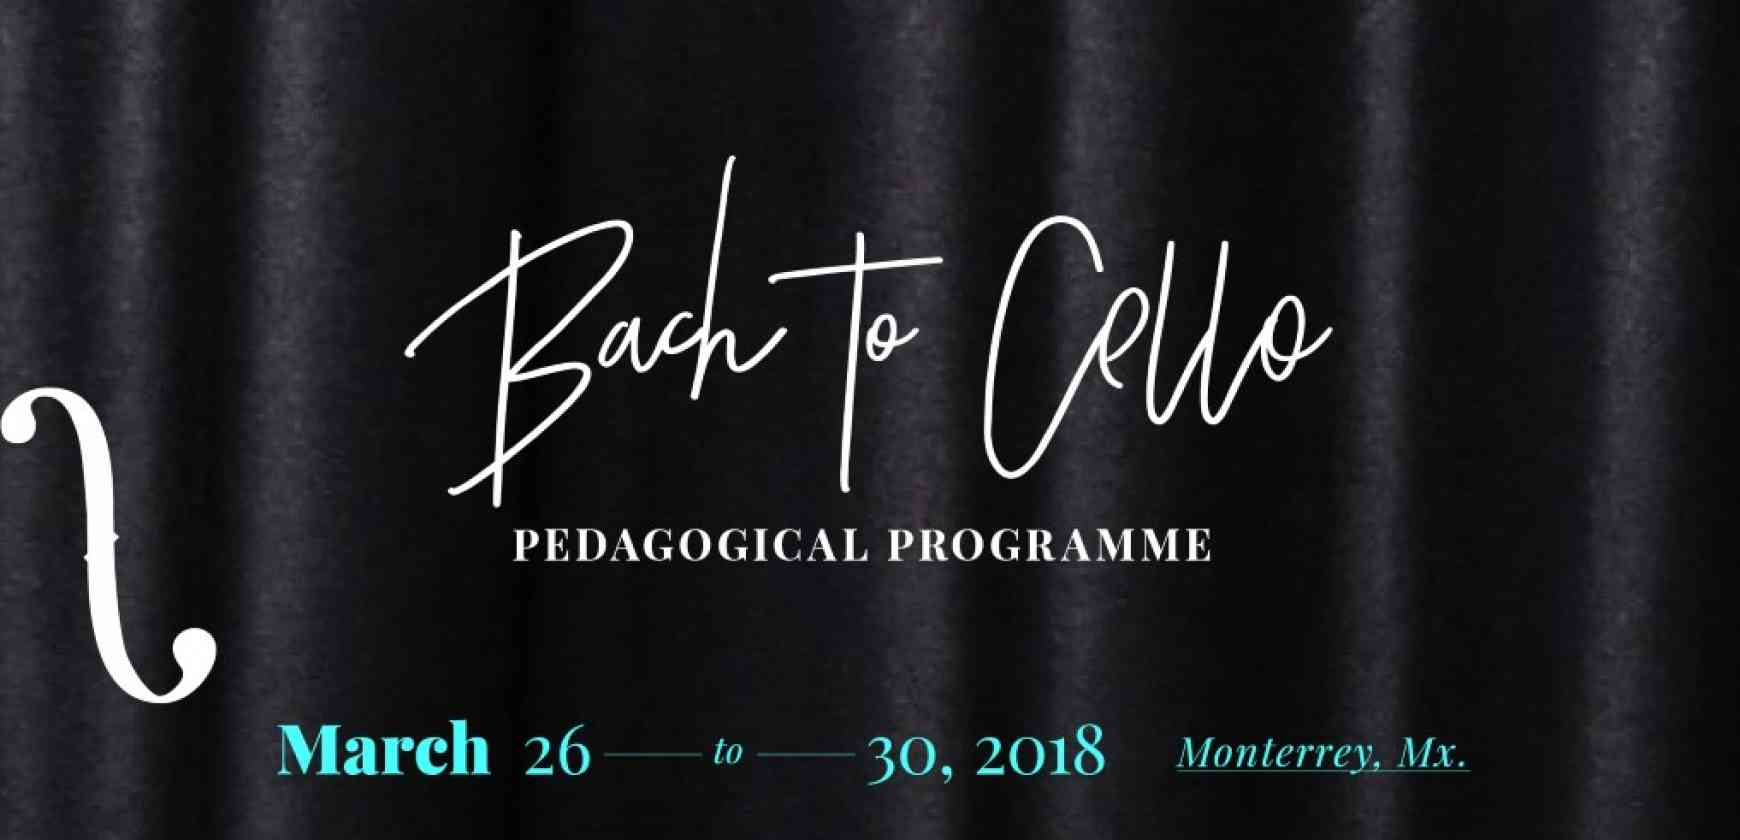 Bach to Cello / Jornadas Pedagógicas